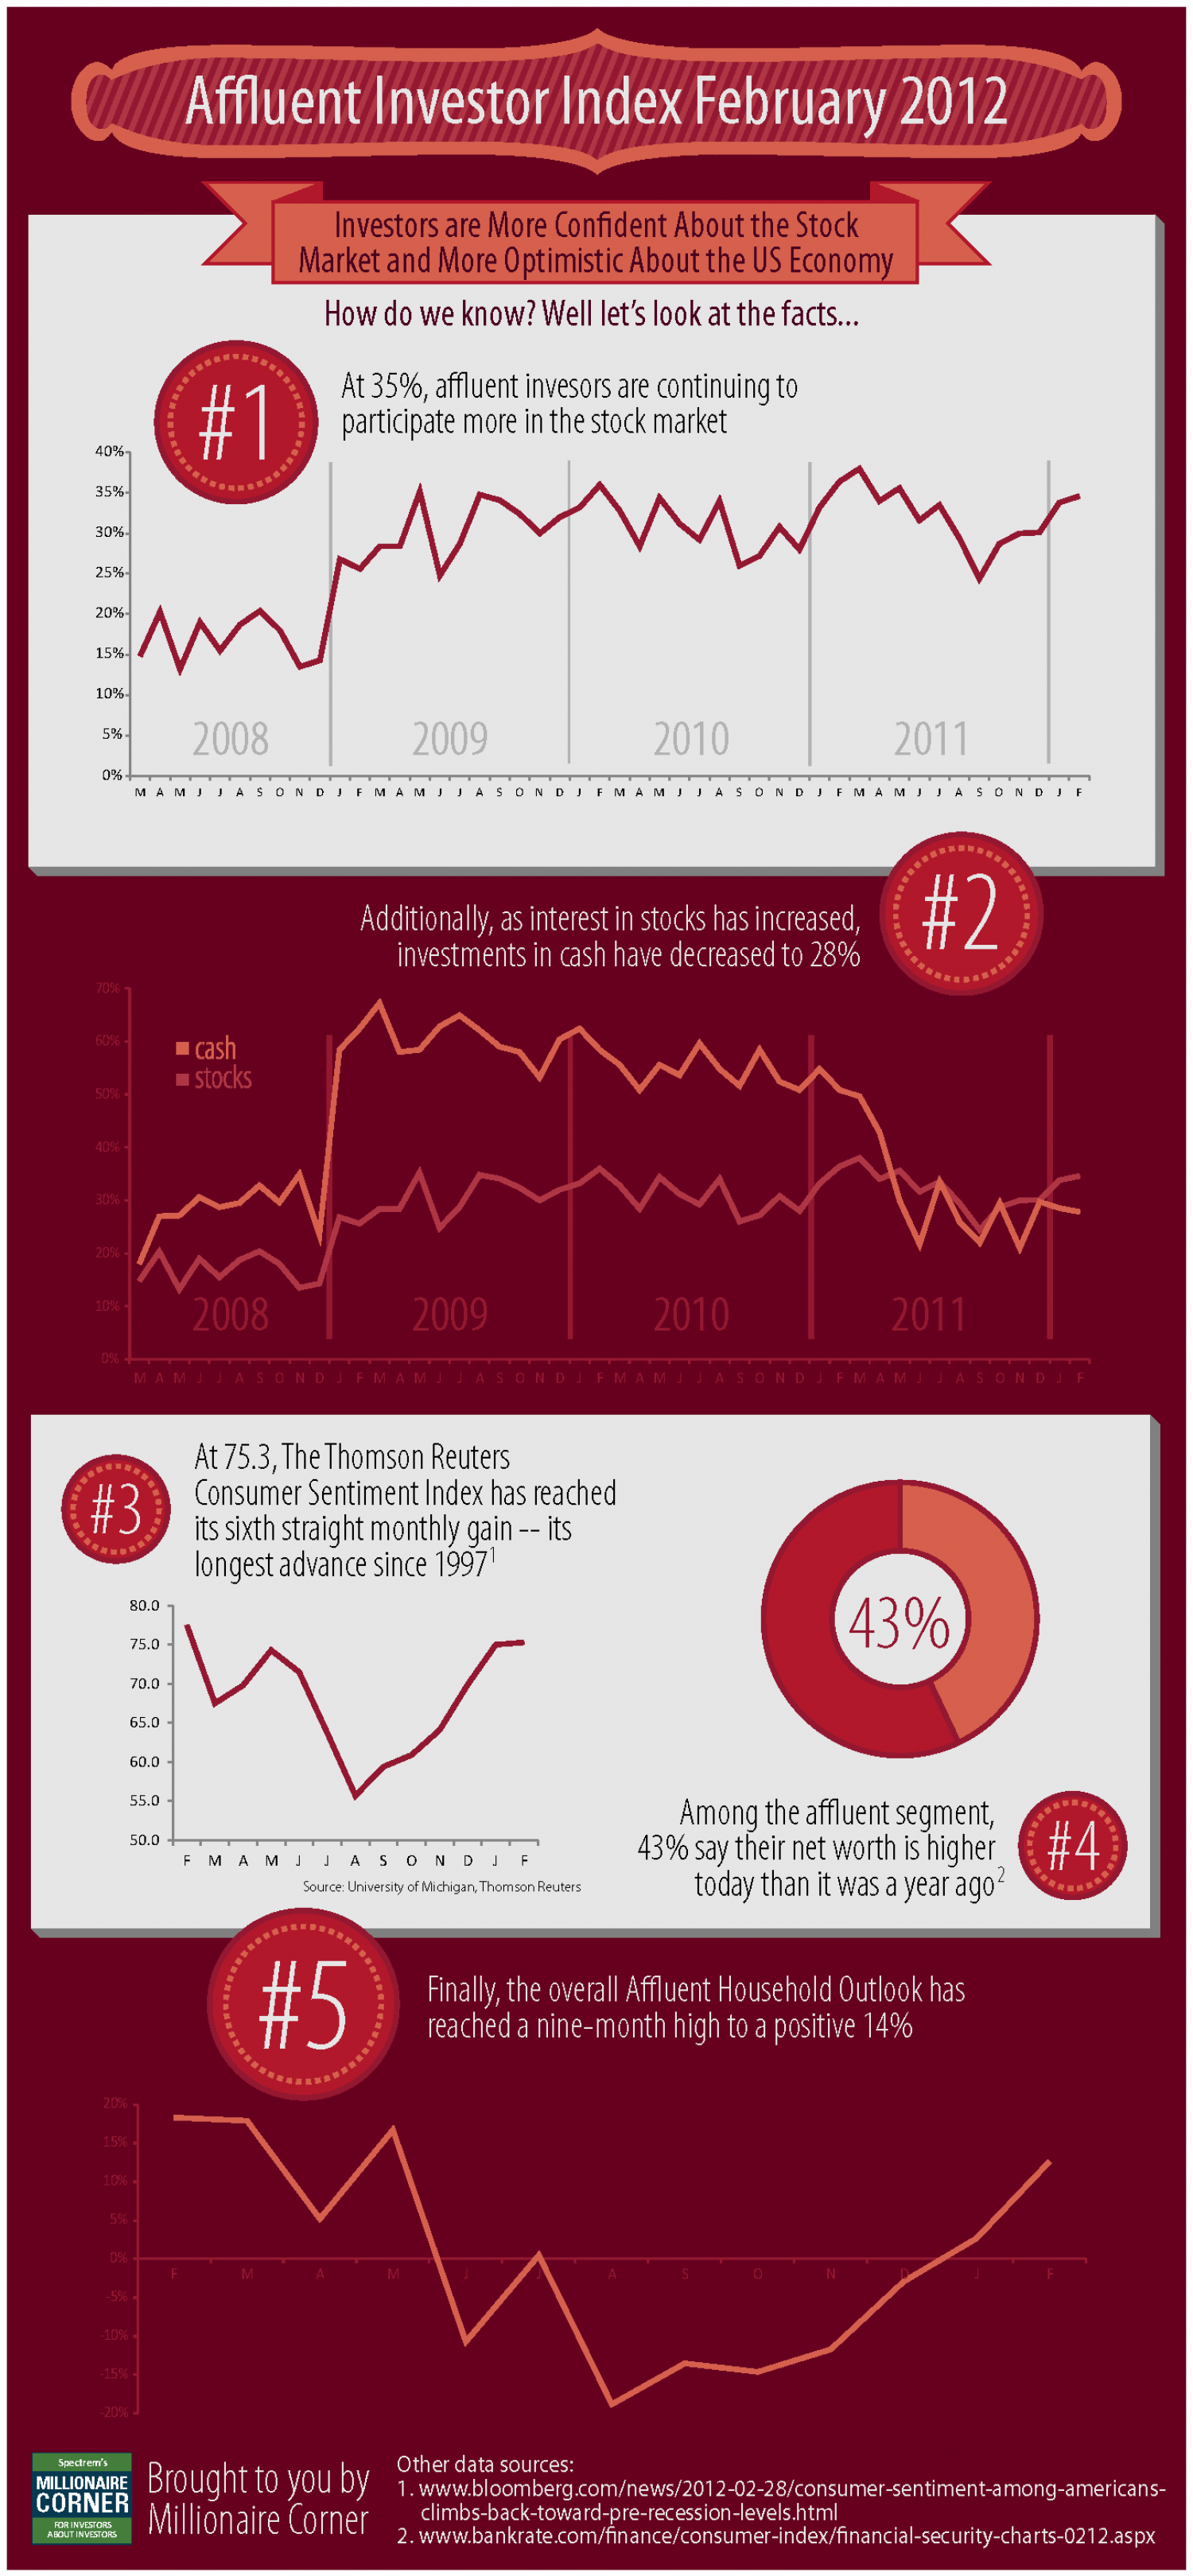 Affluent Investor Index February 2012 Infographic